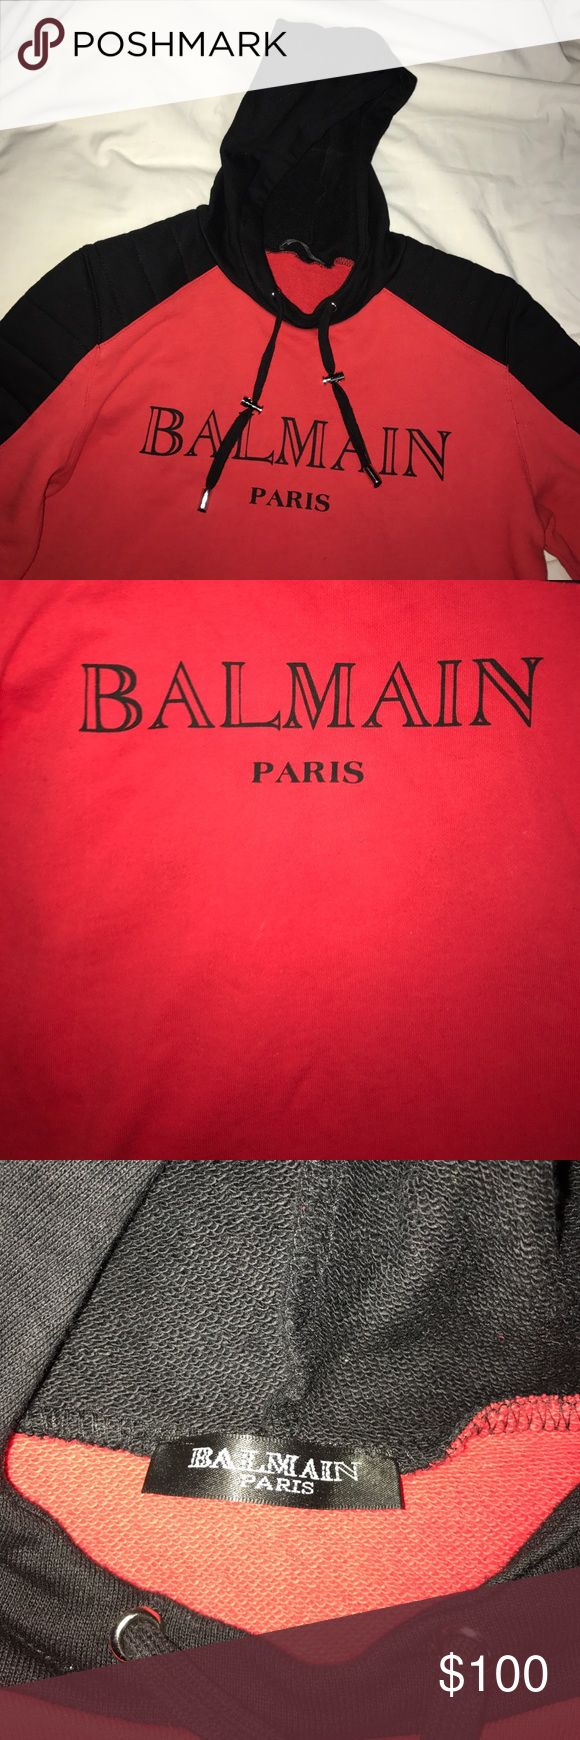 Balmain Hoodie (NOT AUTHENTIC BUT GREAT QUALITY) Balmain Hoodie worn once, still In great condition. Fits women size small, true to size.  No trades. Any questions or offers, feel free Balmain Tops Sweatshirts & Hoodies